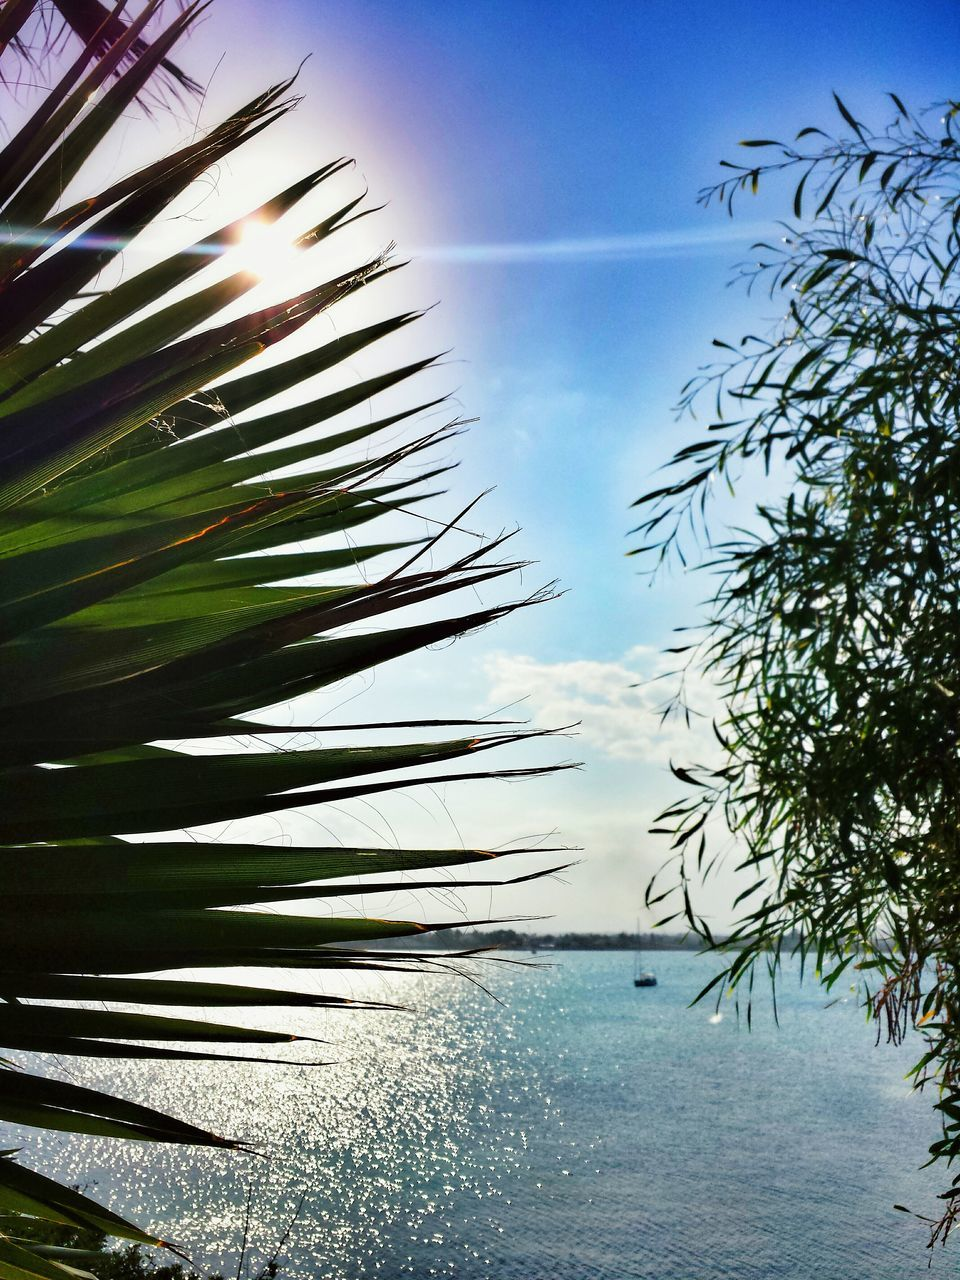 water, nature, sea, beauty in nature, tree, sky, scenics, no people, tranquility, tranquil scene, outdoors, day, horizon over water, sunlight, growth, blue, beach, palm tree, close-up